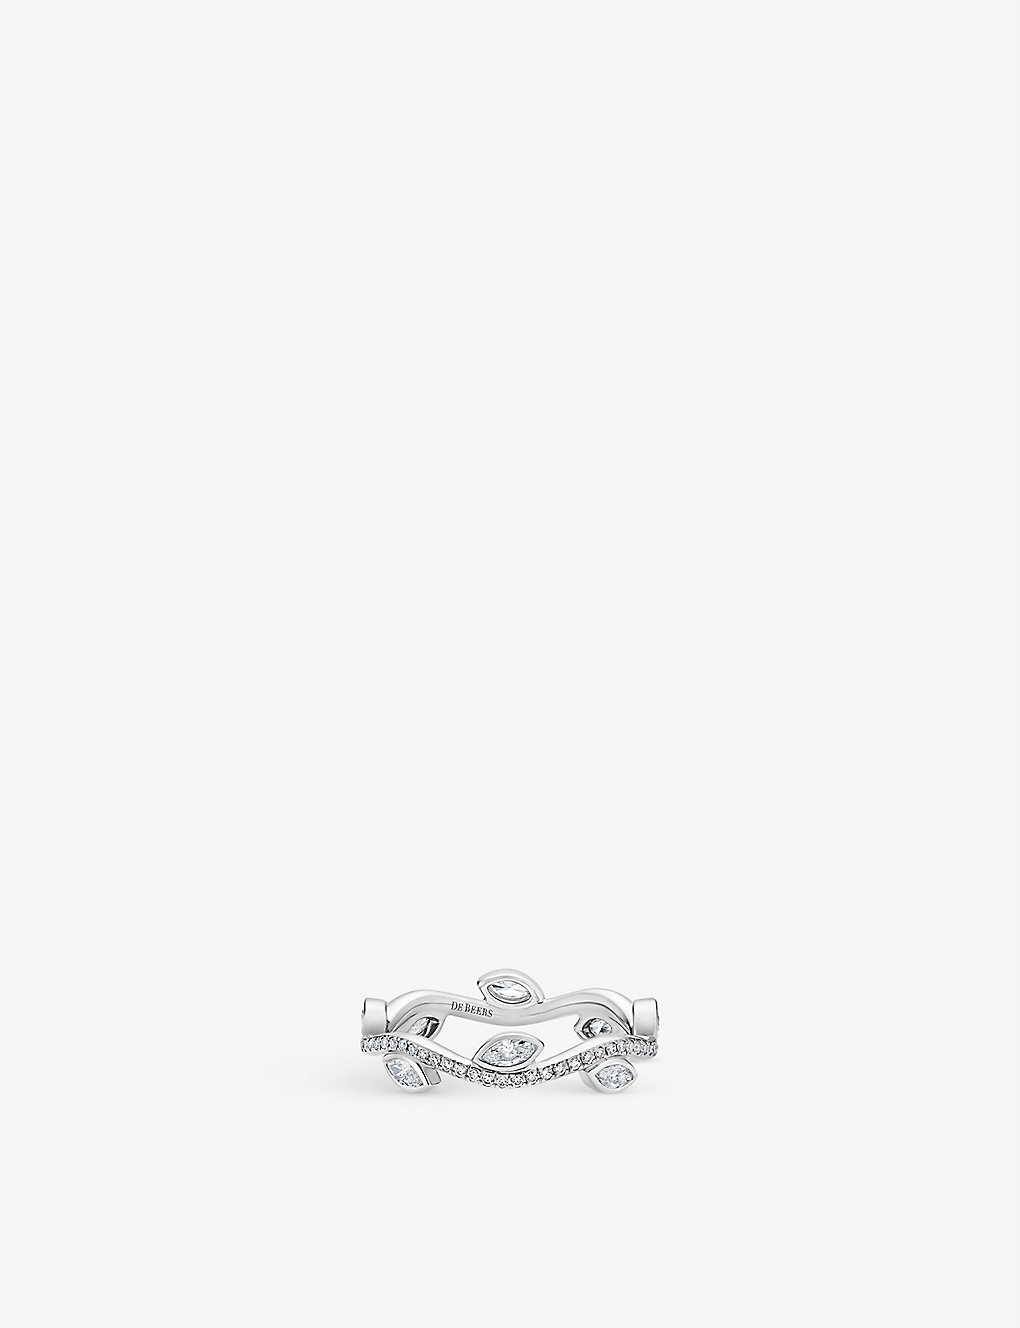 DE BEERS: Adonis Rose platinum and diamond ring